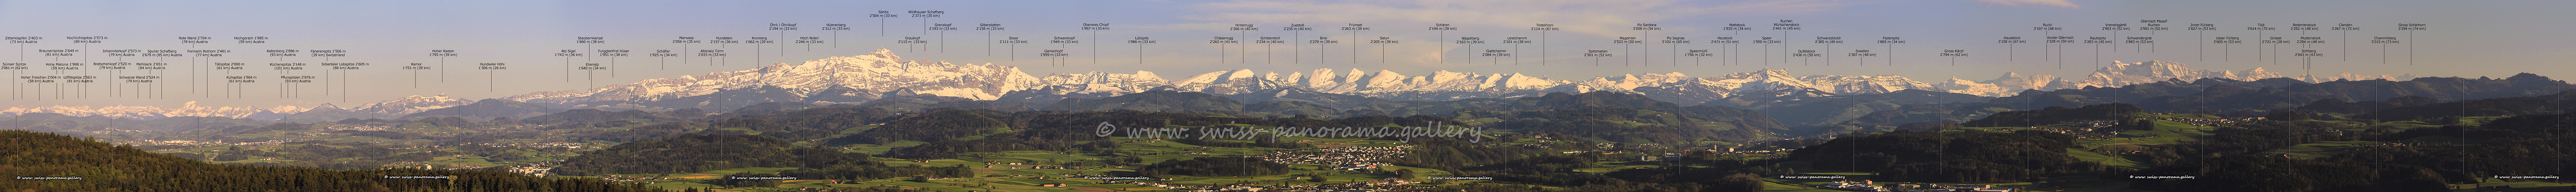 Switzerland panorama Wiler Turm